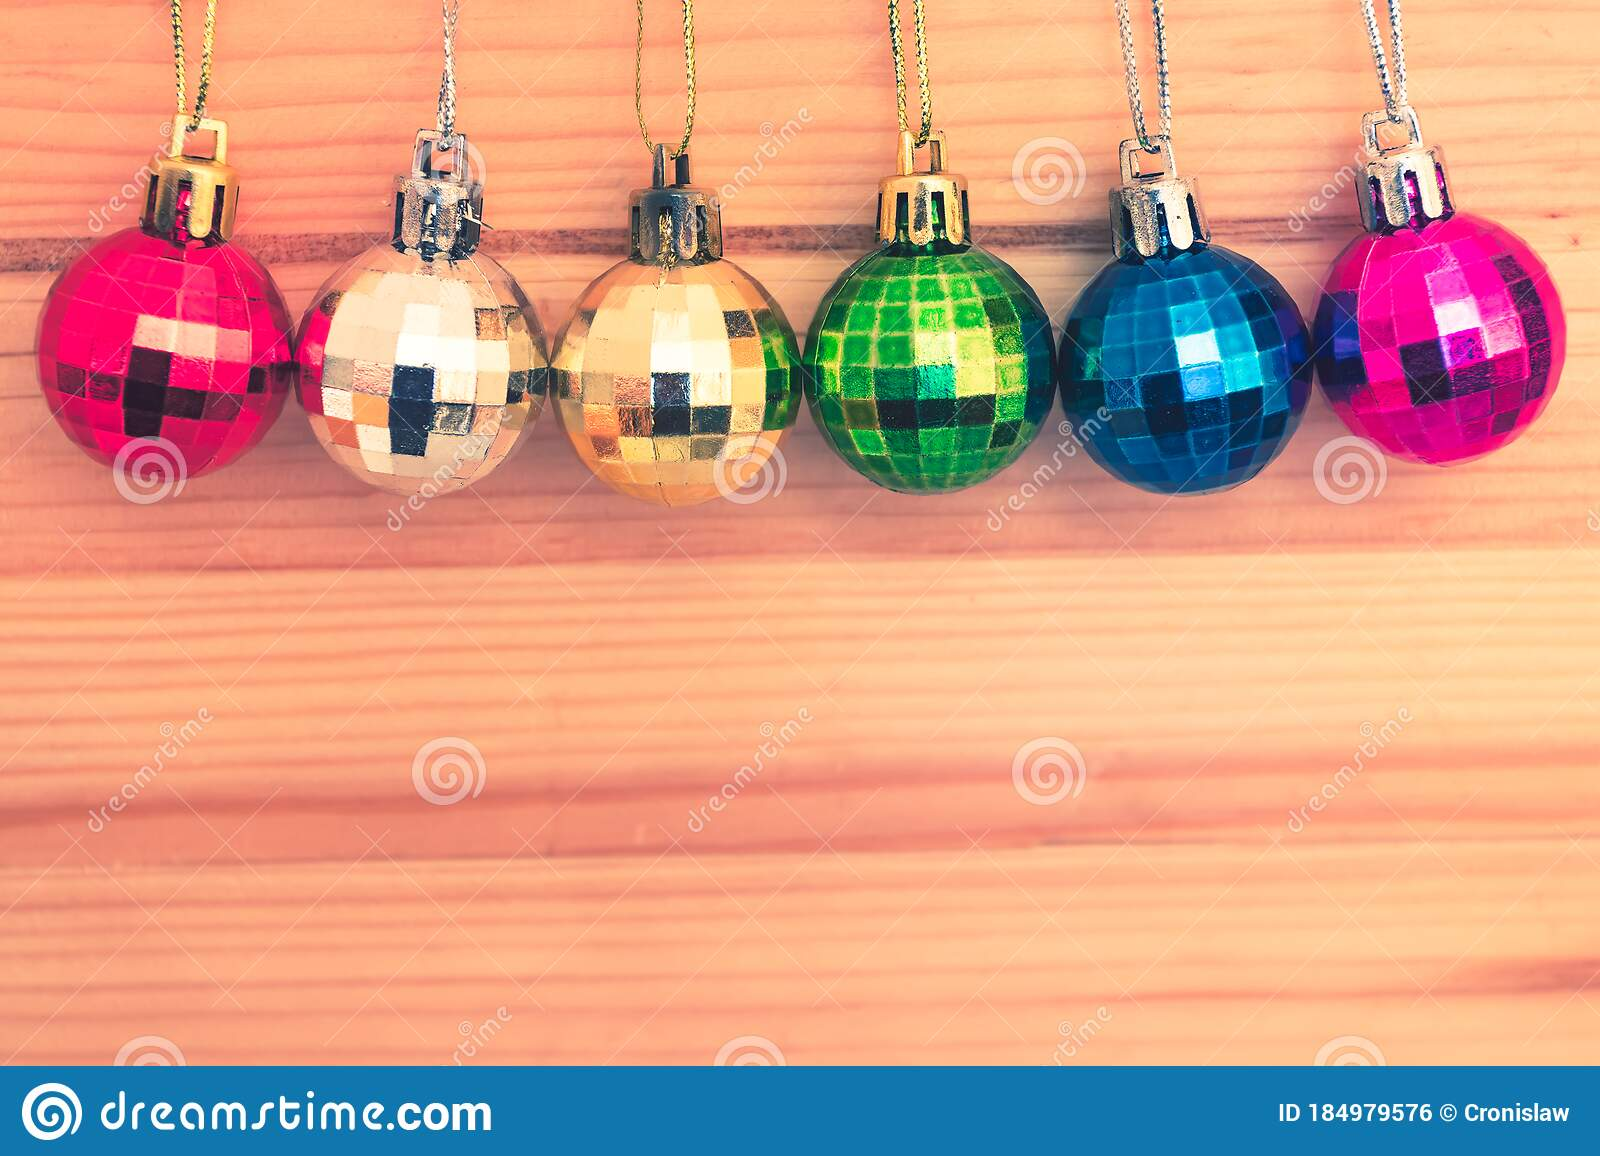 Assortment Of Colorful Christmas Tree Baubles In A Row Stock Photo Image Of Festive Snow 184979576